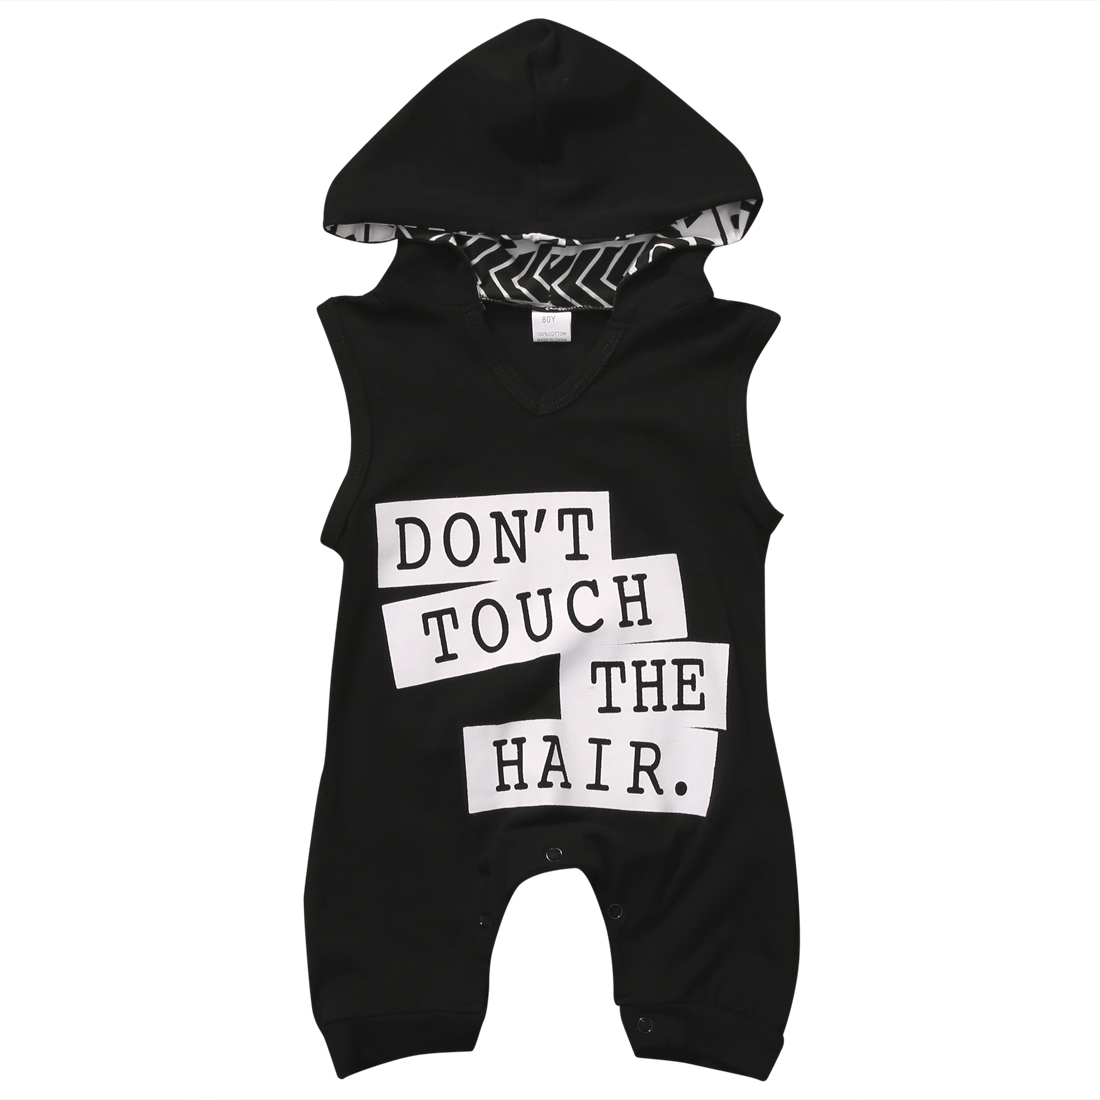 d71c88550c66 Romper Arrow Infant Baby Boy Kid Clothing Hooded Sleeveless Cute ...